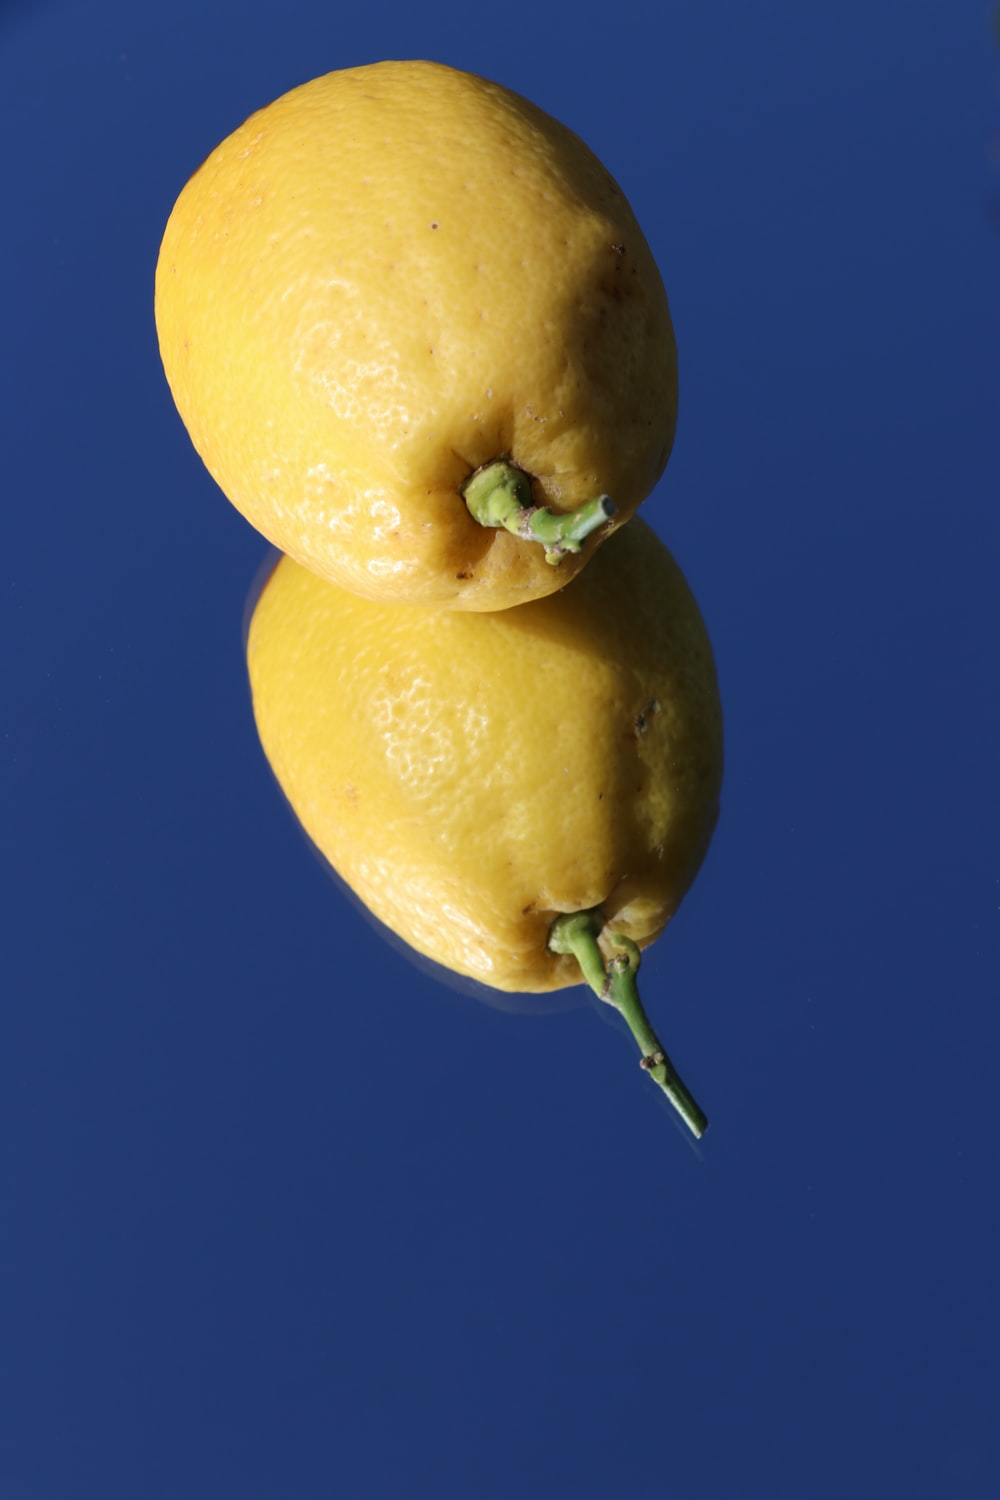 yellow fruit with blue background